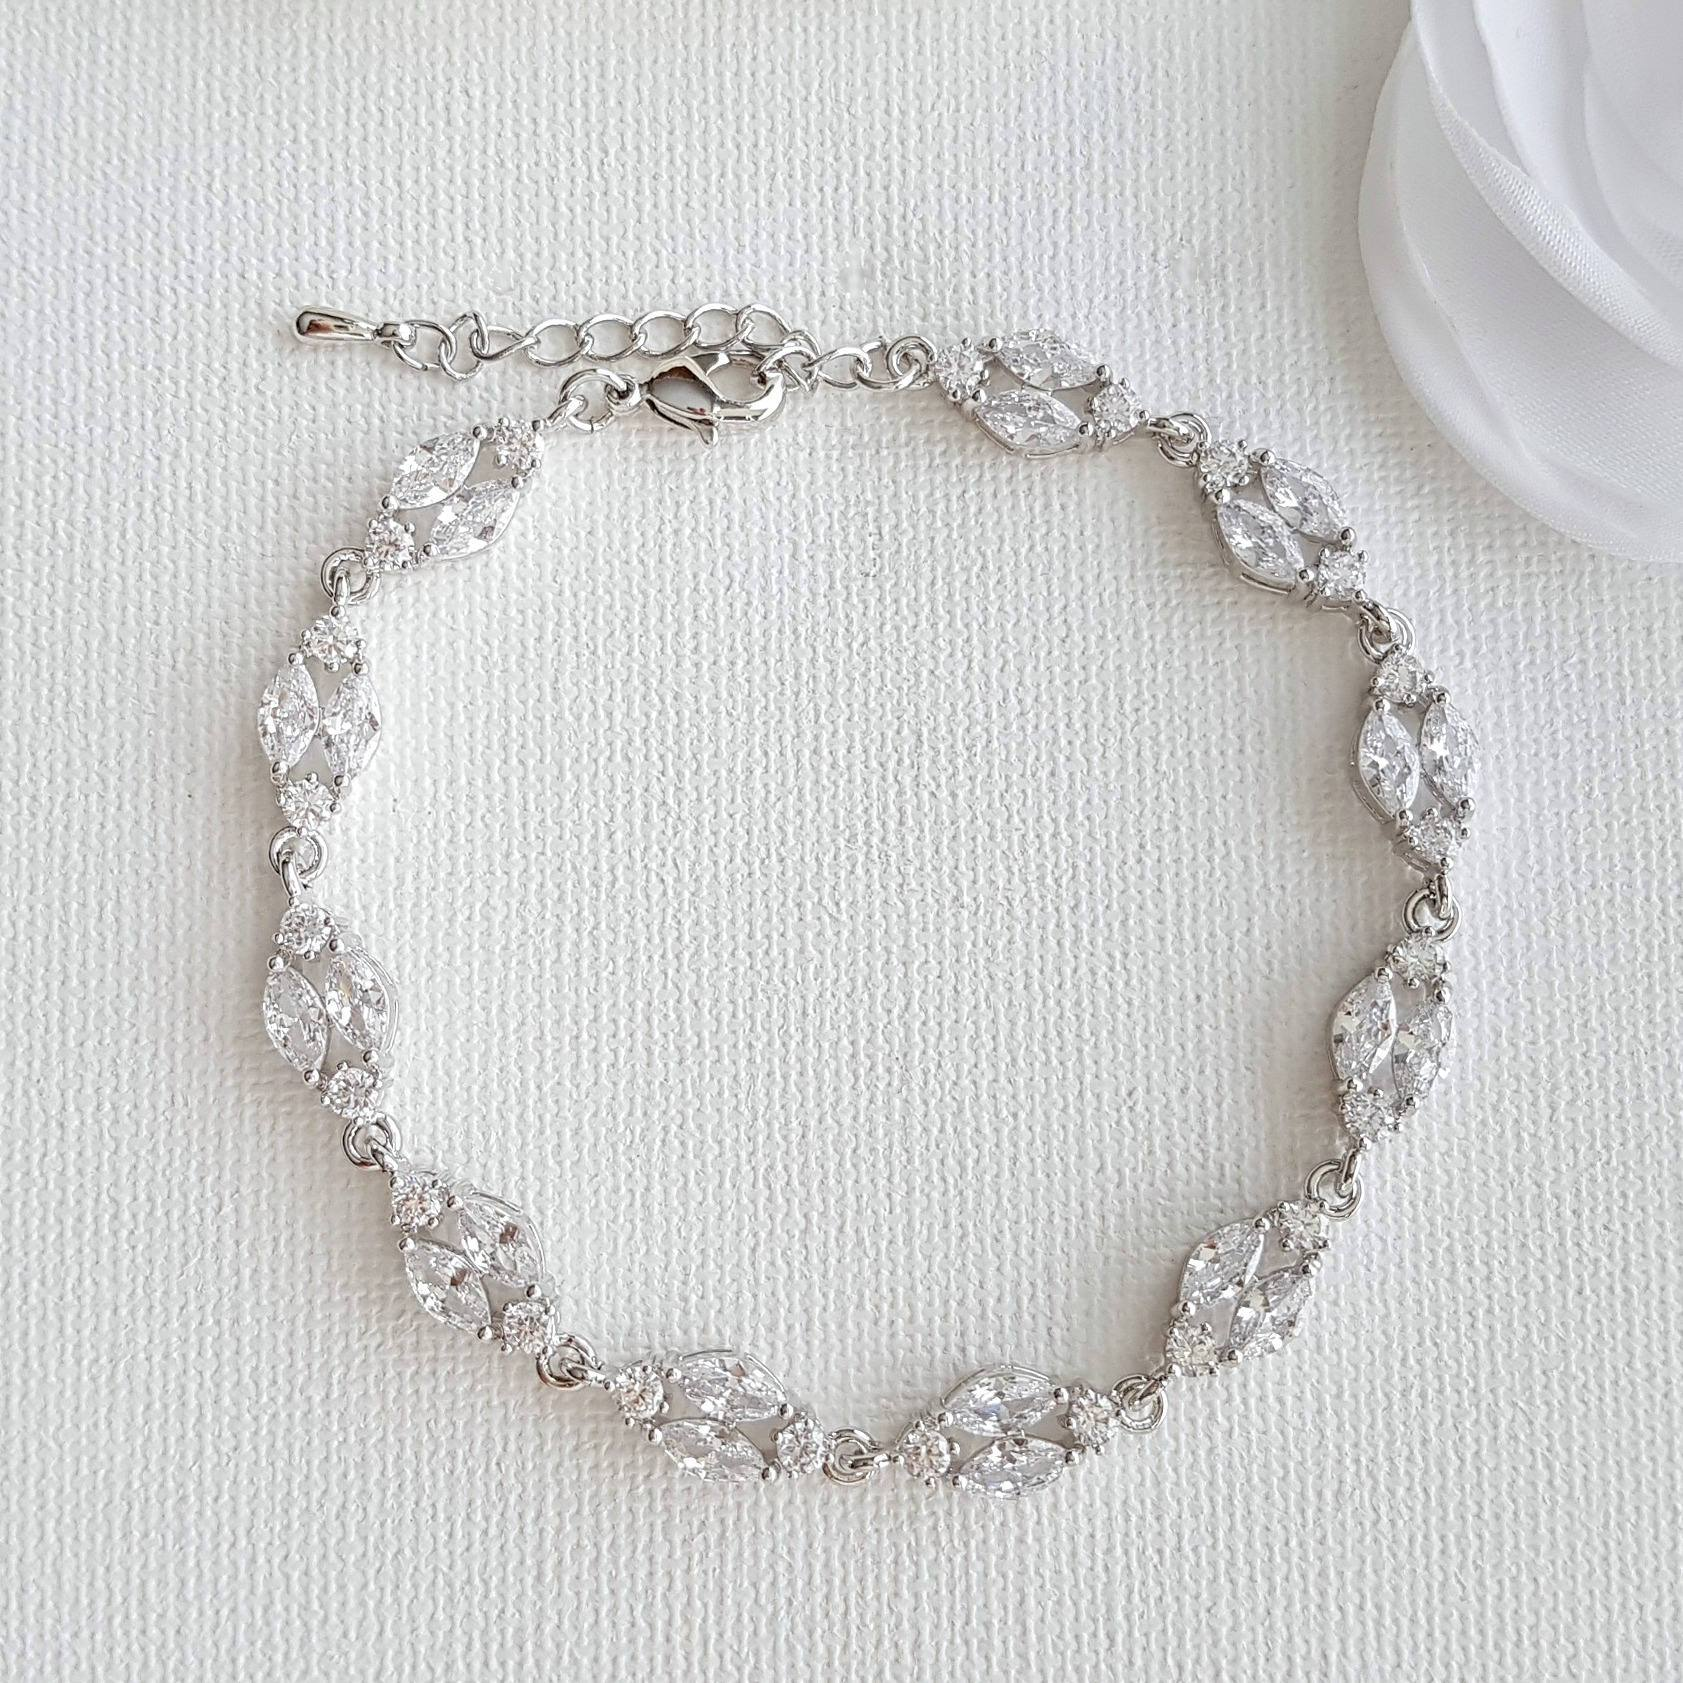 Marquise Silver Cubic Zirconia Bracelet for Bride- Hayley